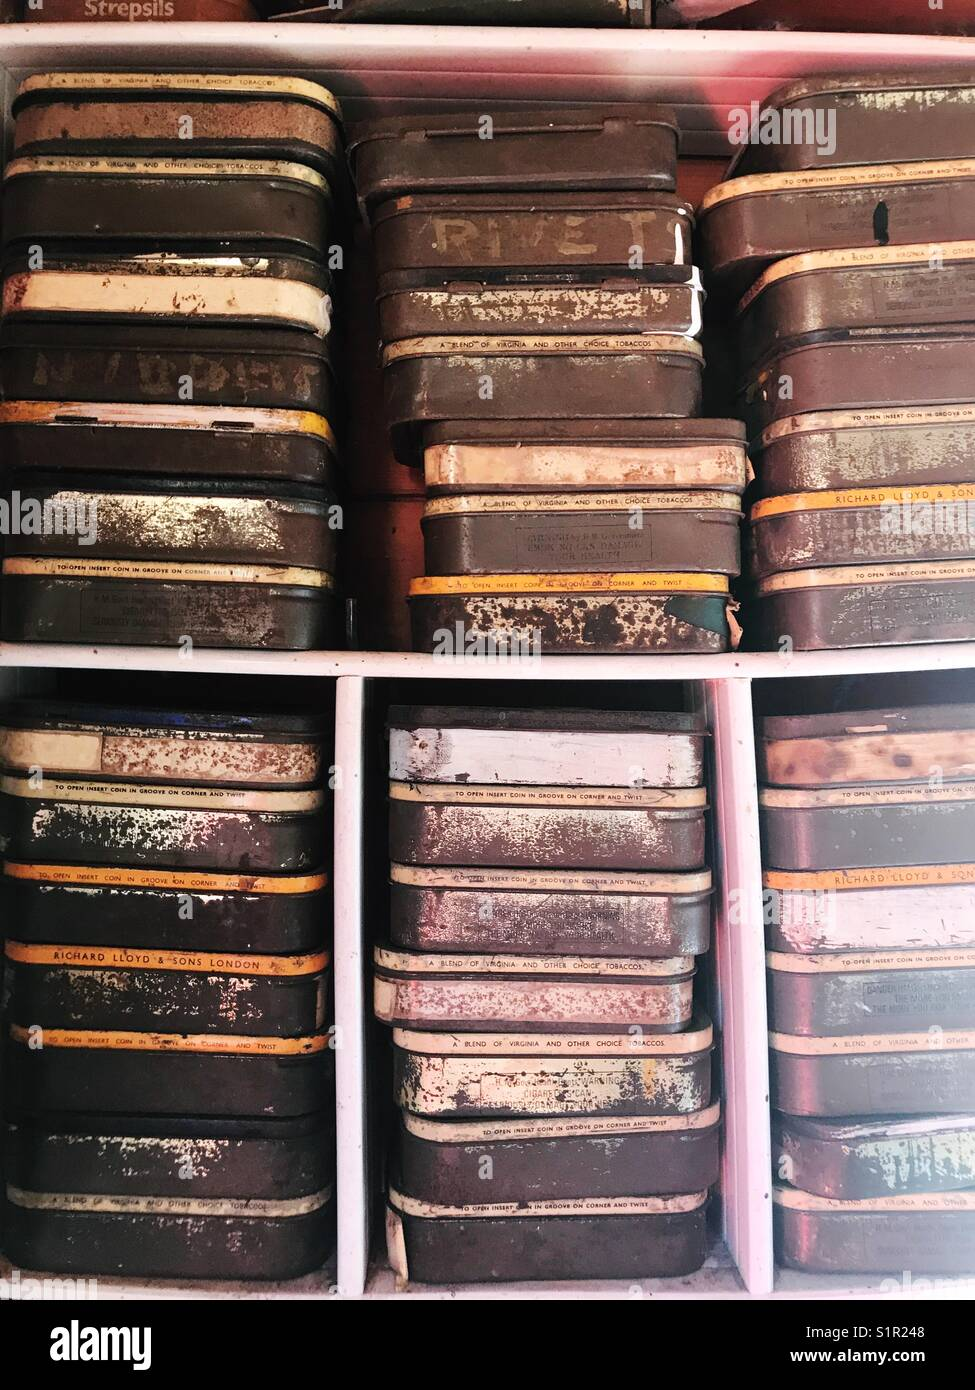 Rusty old vintage tins stacked up on shelves, UK - Stock Image